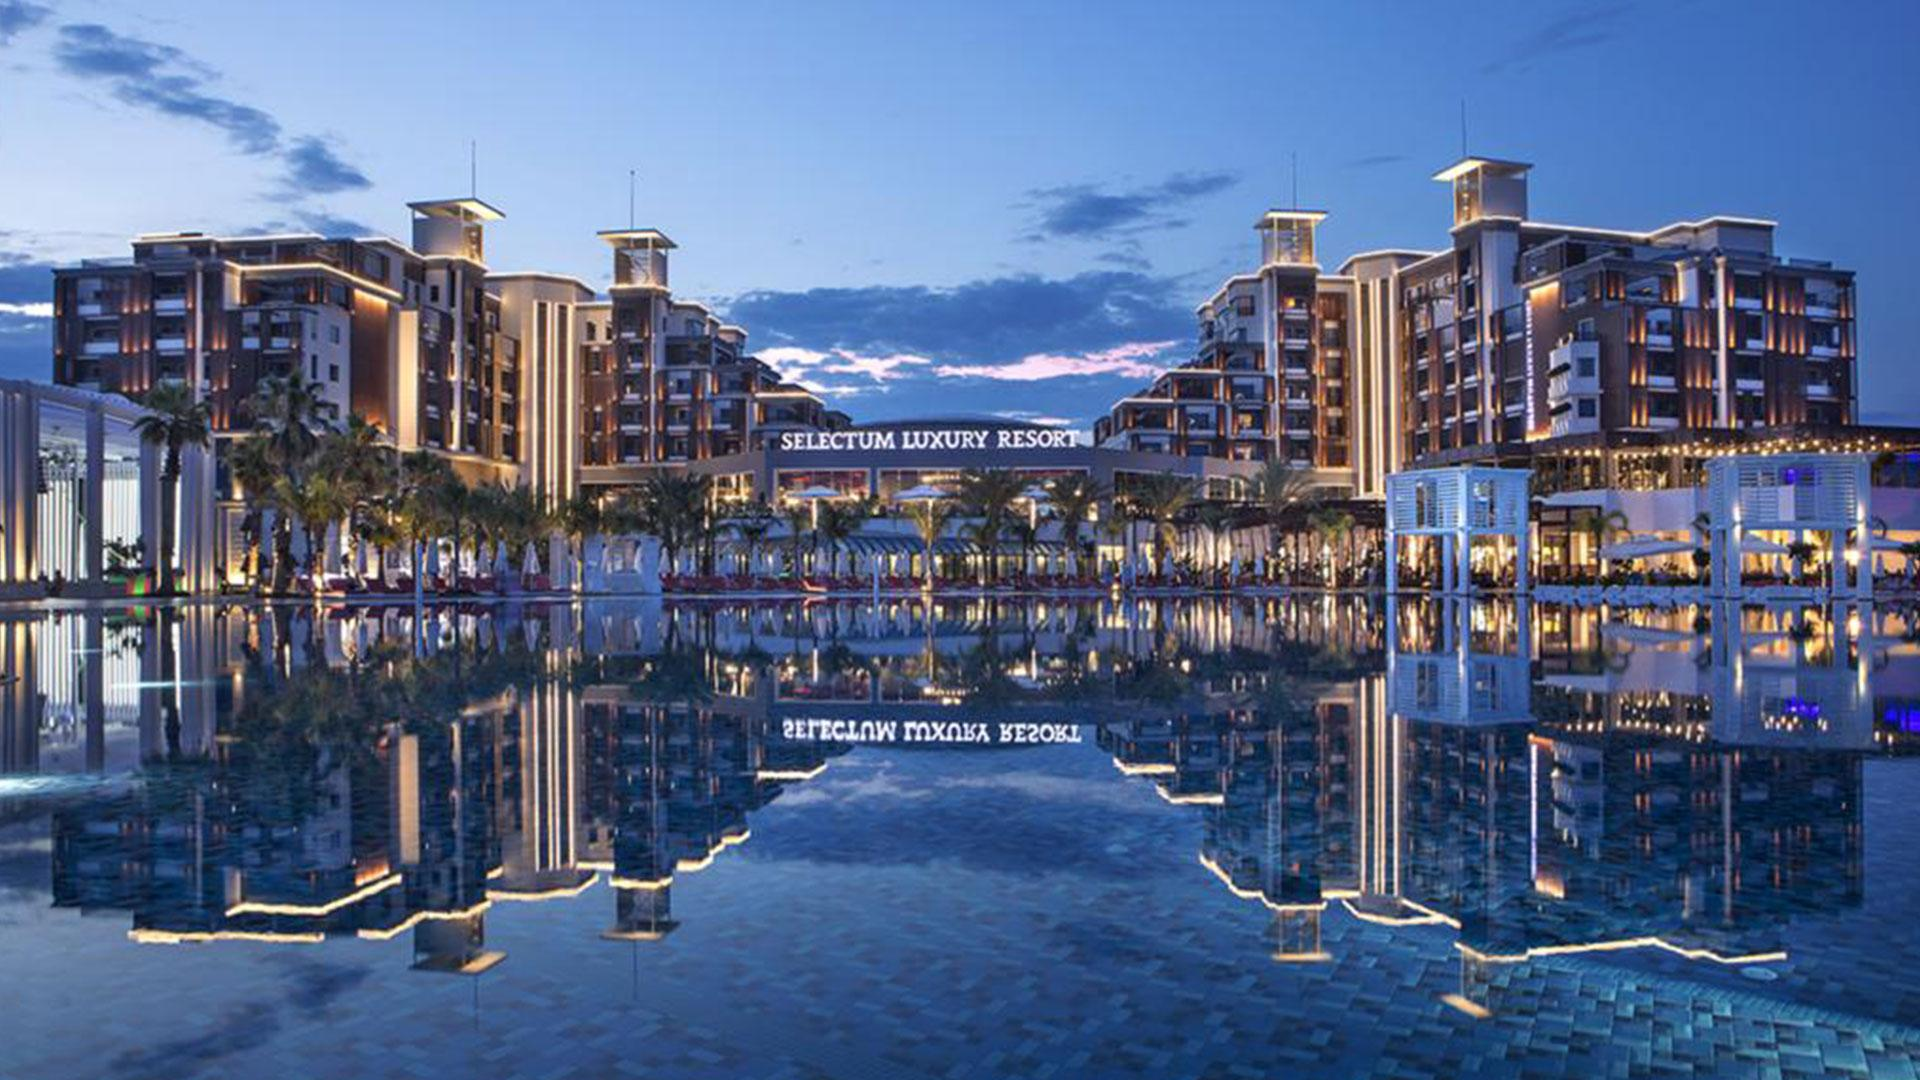 Турция, Белек, SELECTUM LUXURY RESORT BELEK 5* ✈в мае